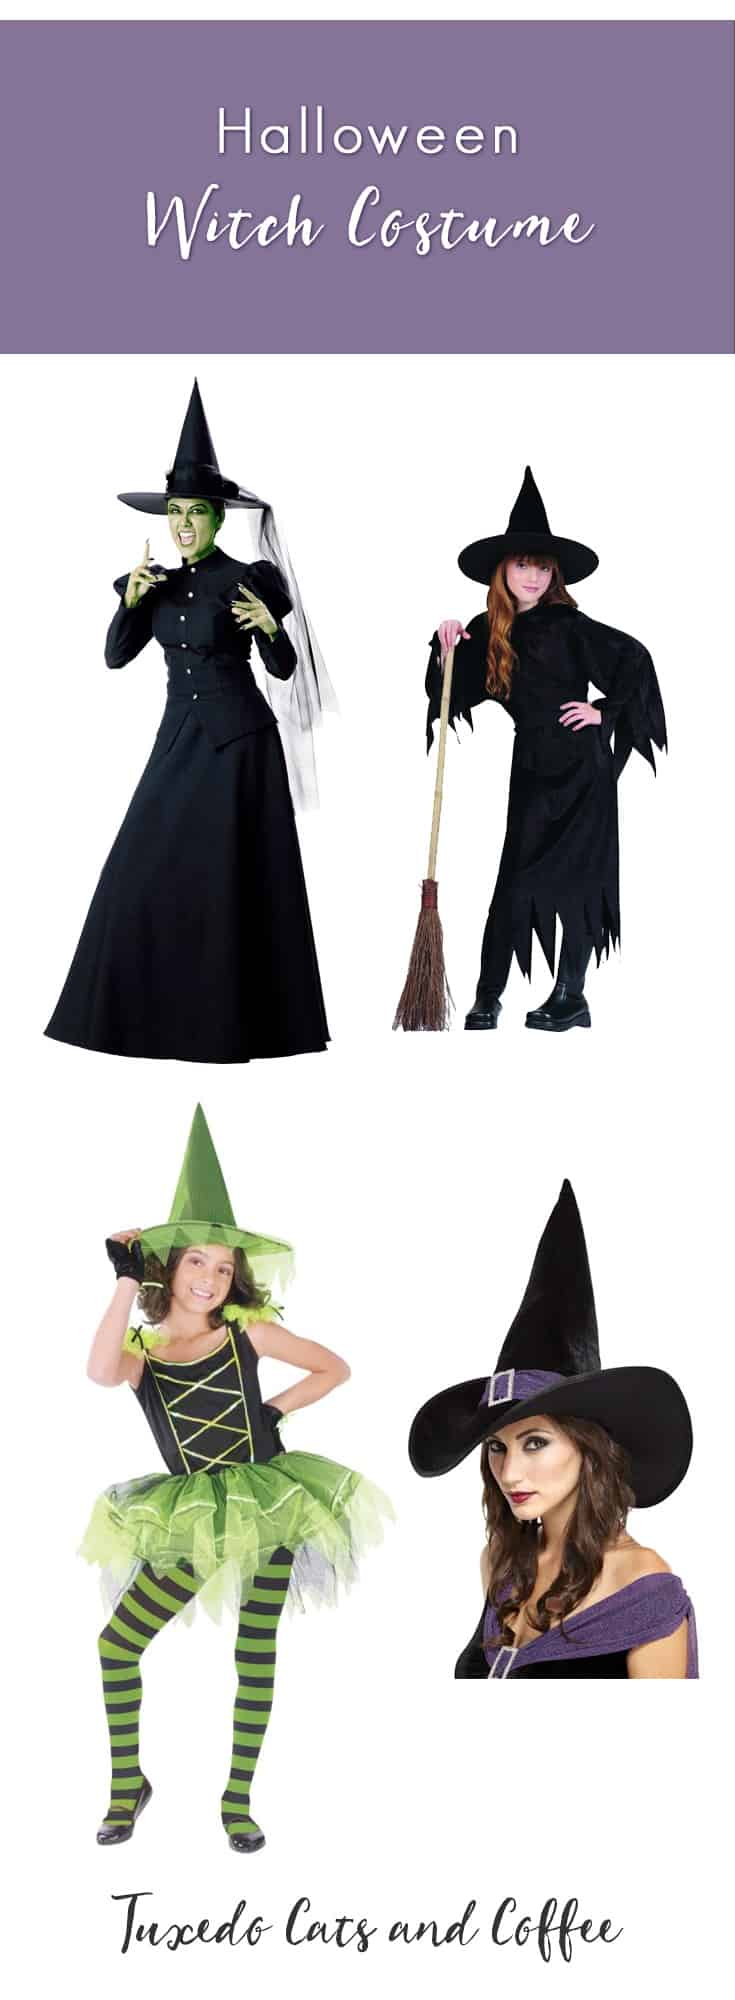 Halloween Witch Costume - Tuxedo Cats and Coffee